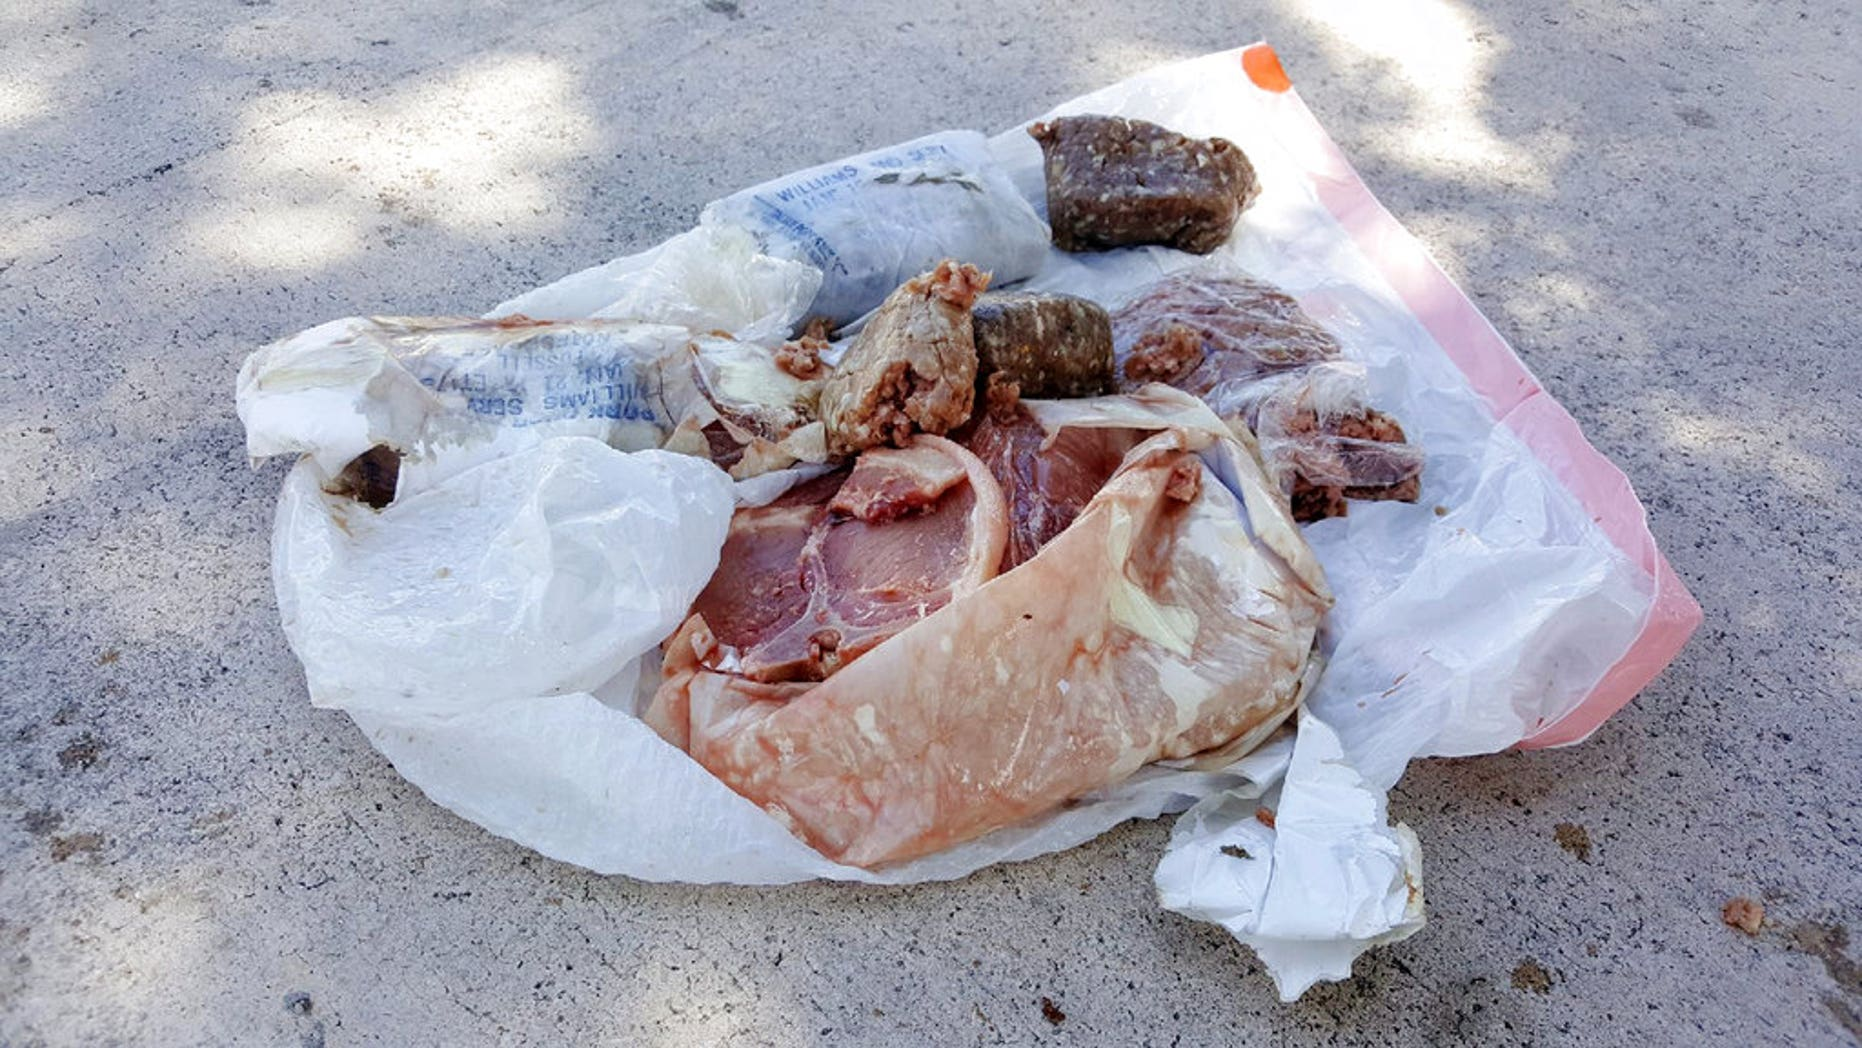 A 15-pound bag of frozen pork landed on the roof of the Adair family home in Deerfield Beach, Fla., Saturday.